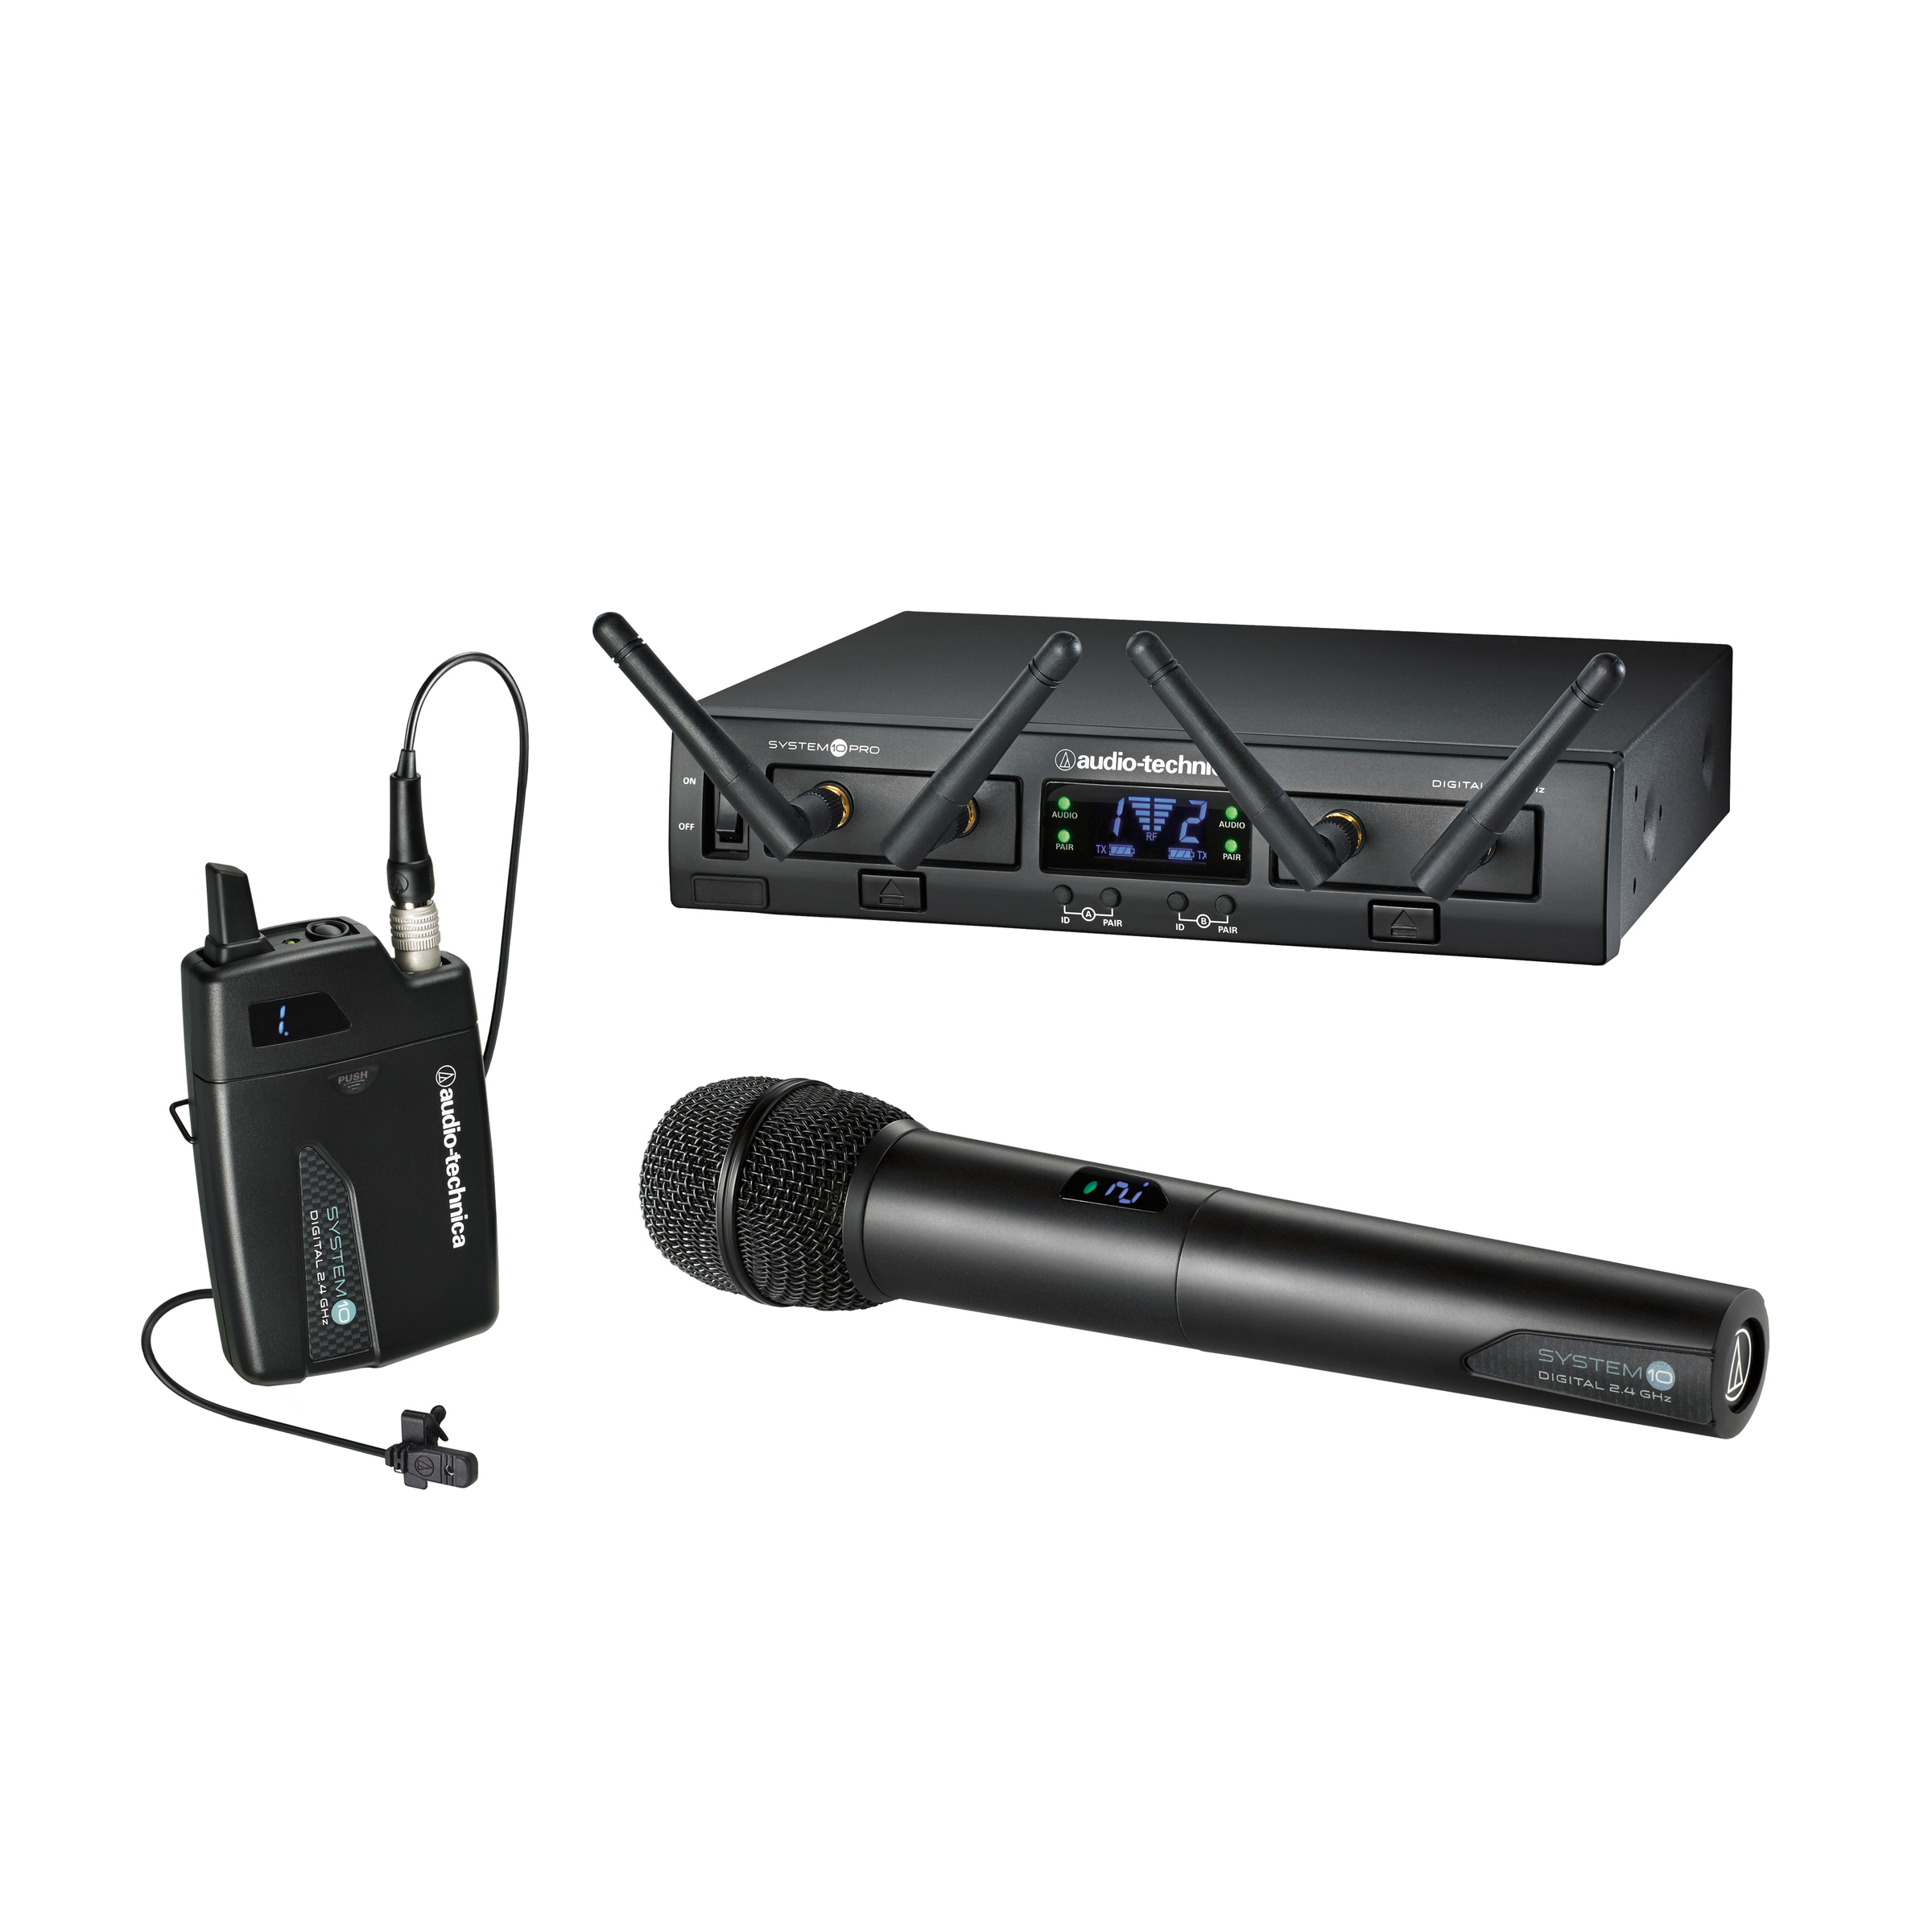 Audio-Technica System 10 Pro Digital Wireless components, as used by students at Nashville's Hull Jackson Montessori Magnet School. Pictured are ATW-RC13 Rack-mount receiver chassis, ATW-RU13x2 receiver unit, ATW-T1002 handheld dynamic unidirectional microphone/transmitter and ATW-T1001 UniPak® transmitter with MT830cW lavalier microphone.